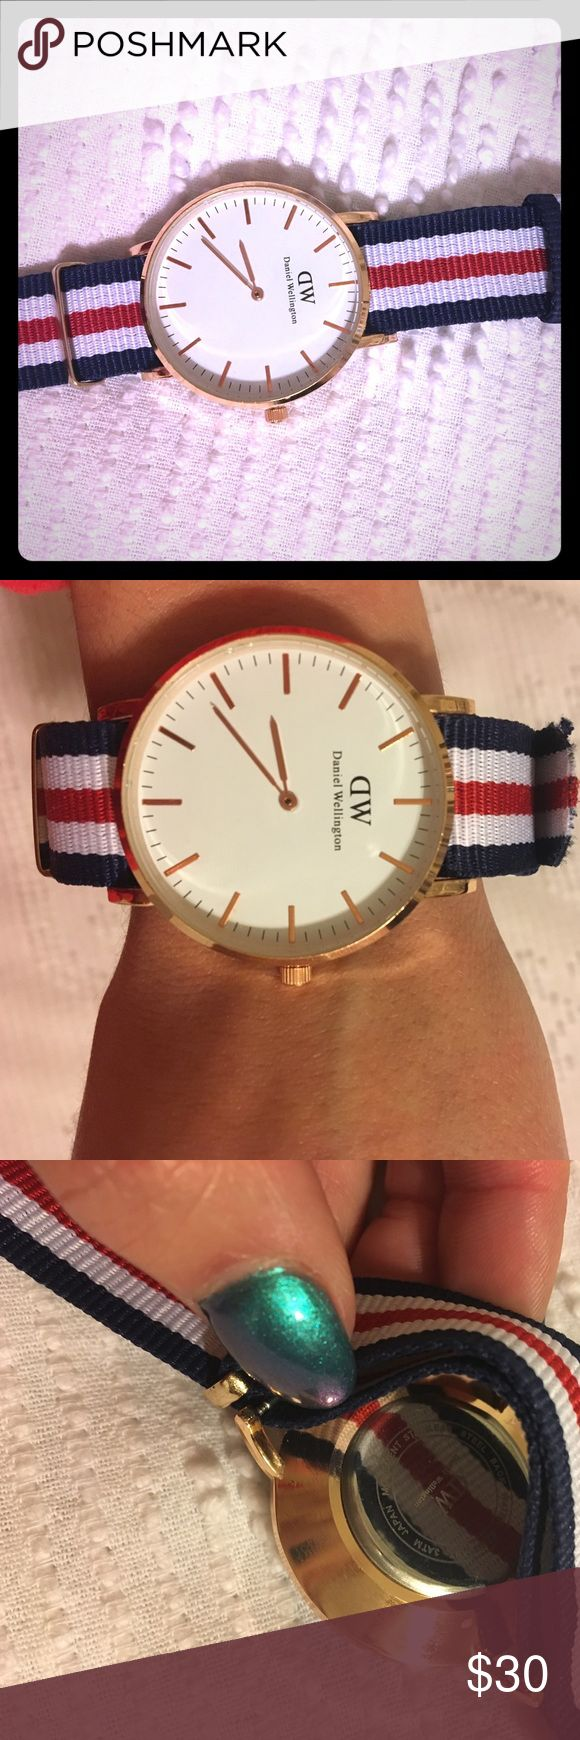 Daniel Wellington Watch This is a brand new Daniel Wellington watch. My husband bought me a new watch for Valentine's Day and told me to sell this one. I bought it from Mer and it did not come with a box. The seller assured me it was authentic, buy I'm not 100% sure, so the price reflects this!! Works perfect and has a huge face!!! Super cute watch!!! Daniel Wellington Accessories Watches